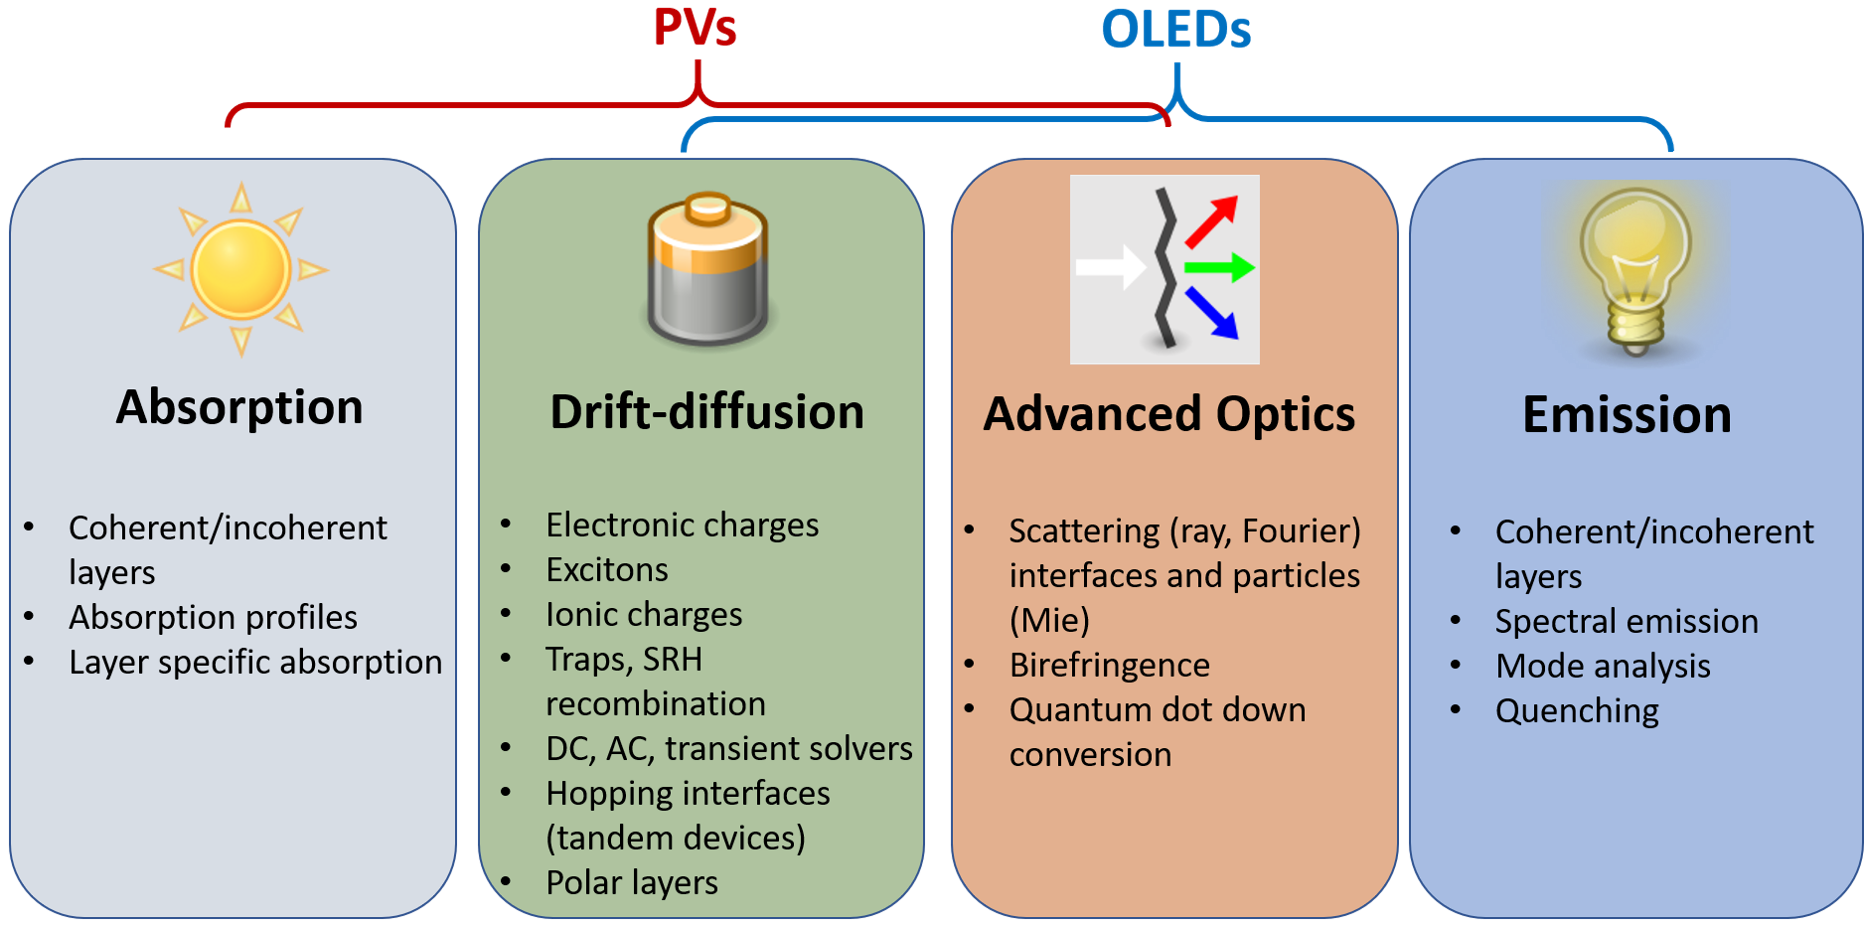 4 different simulation modules of setfos for absorption, drift-diffusion, scattering, birefringence and emission